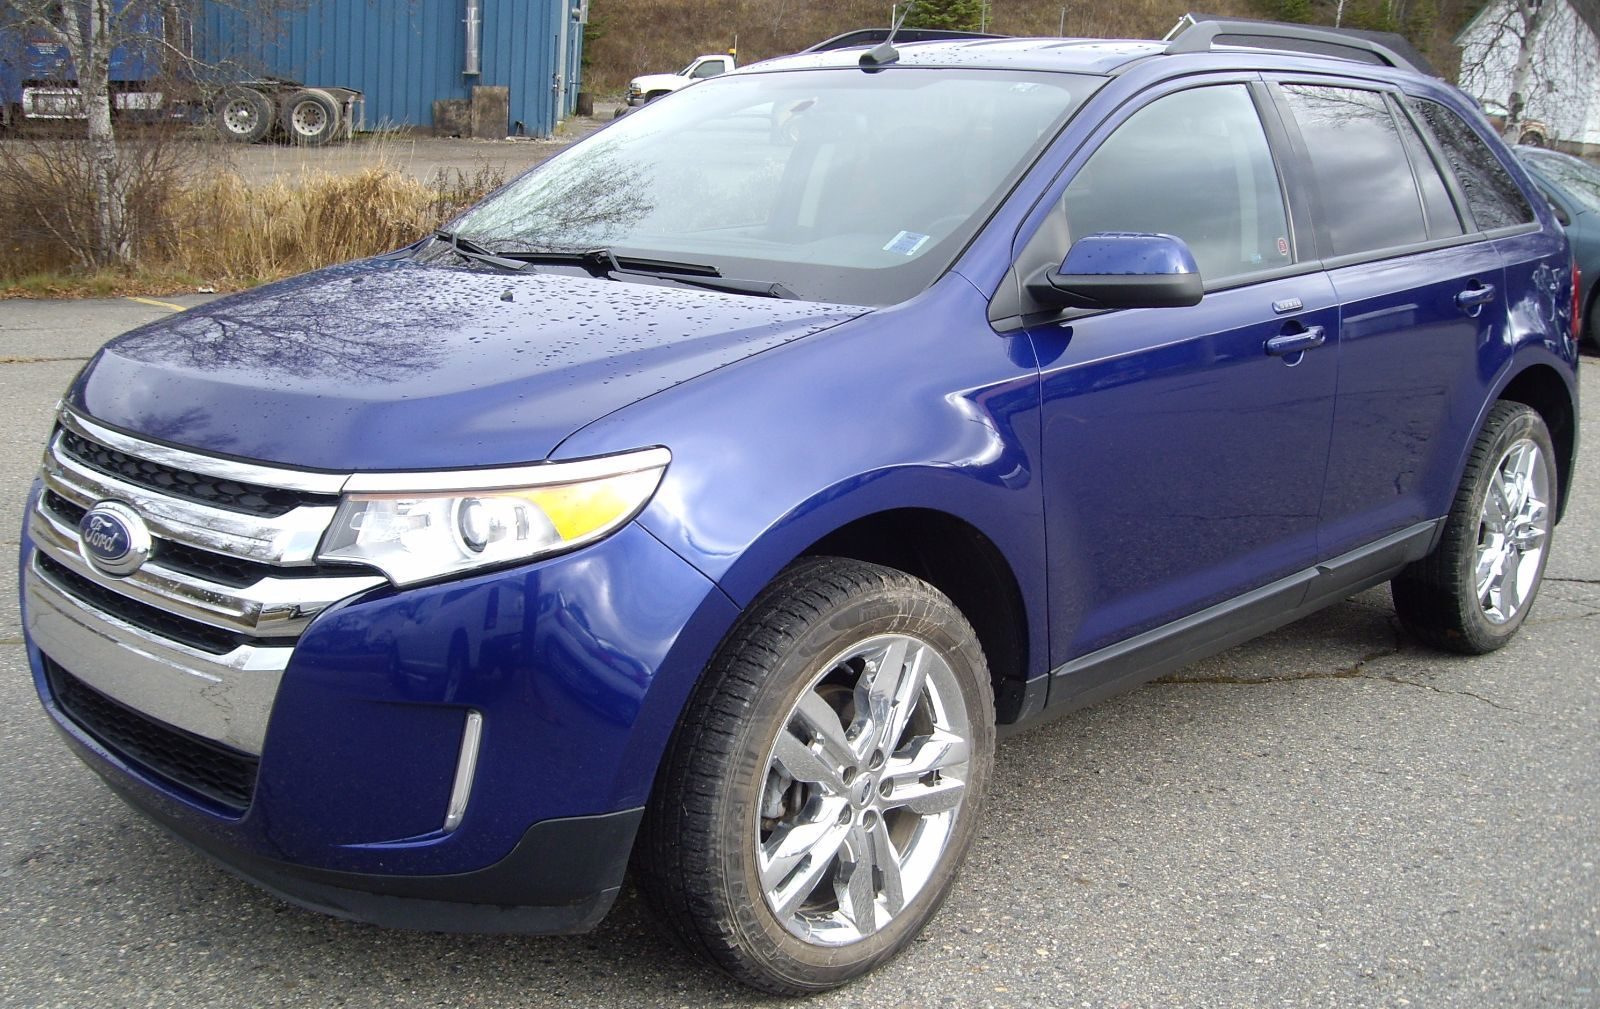 used 2013 ford edge sel in new germany used inventory lake view auto in new germany nova scotia. Black Bedroom Furniture Sets. Home Design Ideas